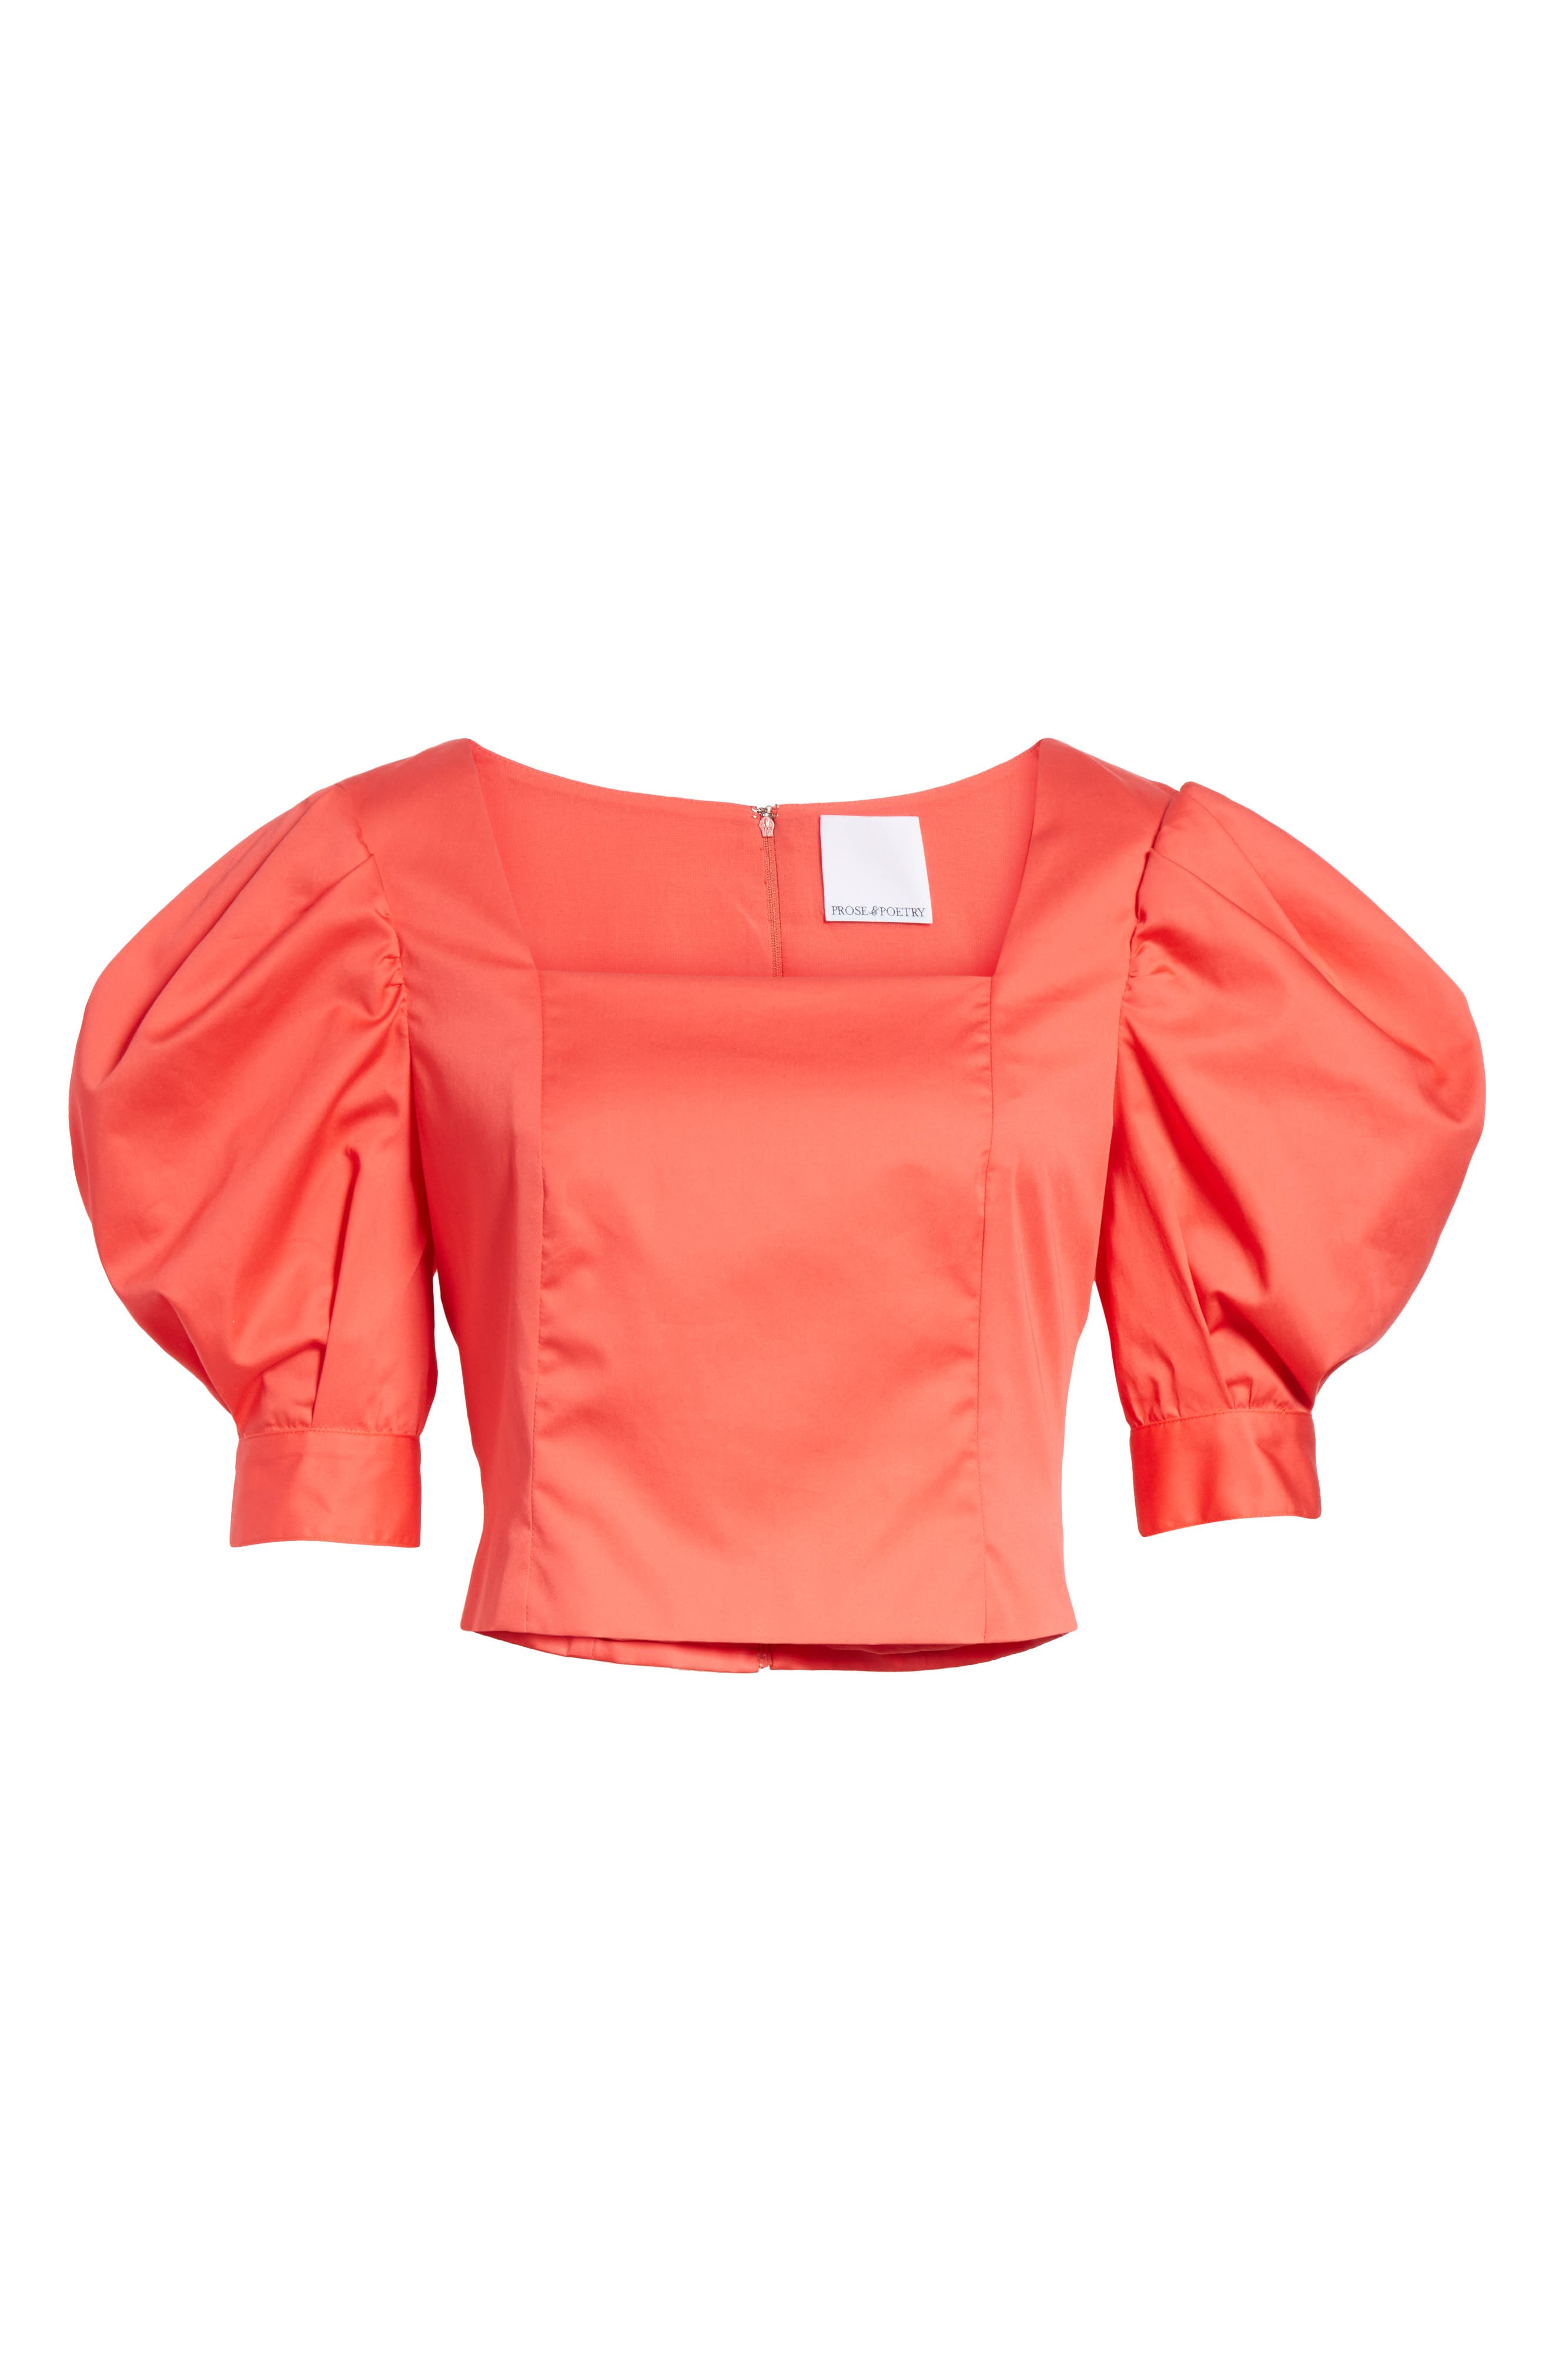 Prose & Poetry Claudia Puff Sleeve Top,                             Alternate thumbnail 6, color,                             621